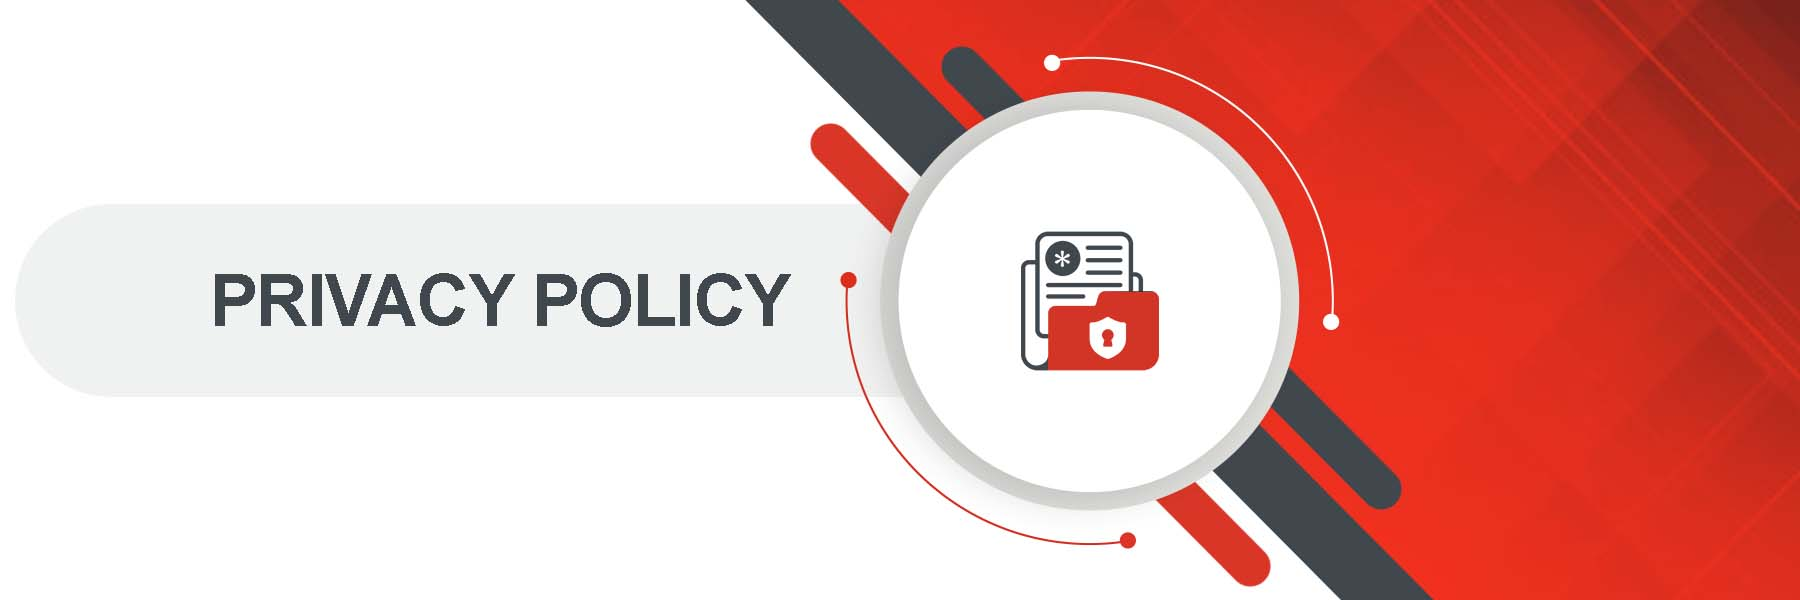 Aguante Privacy Policy